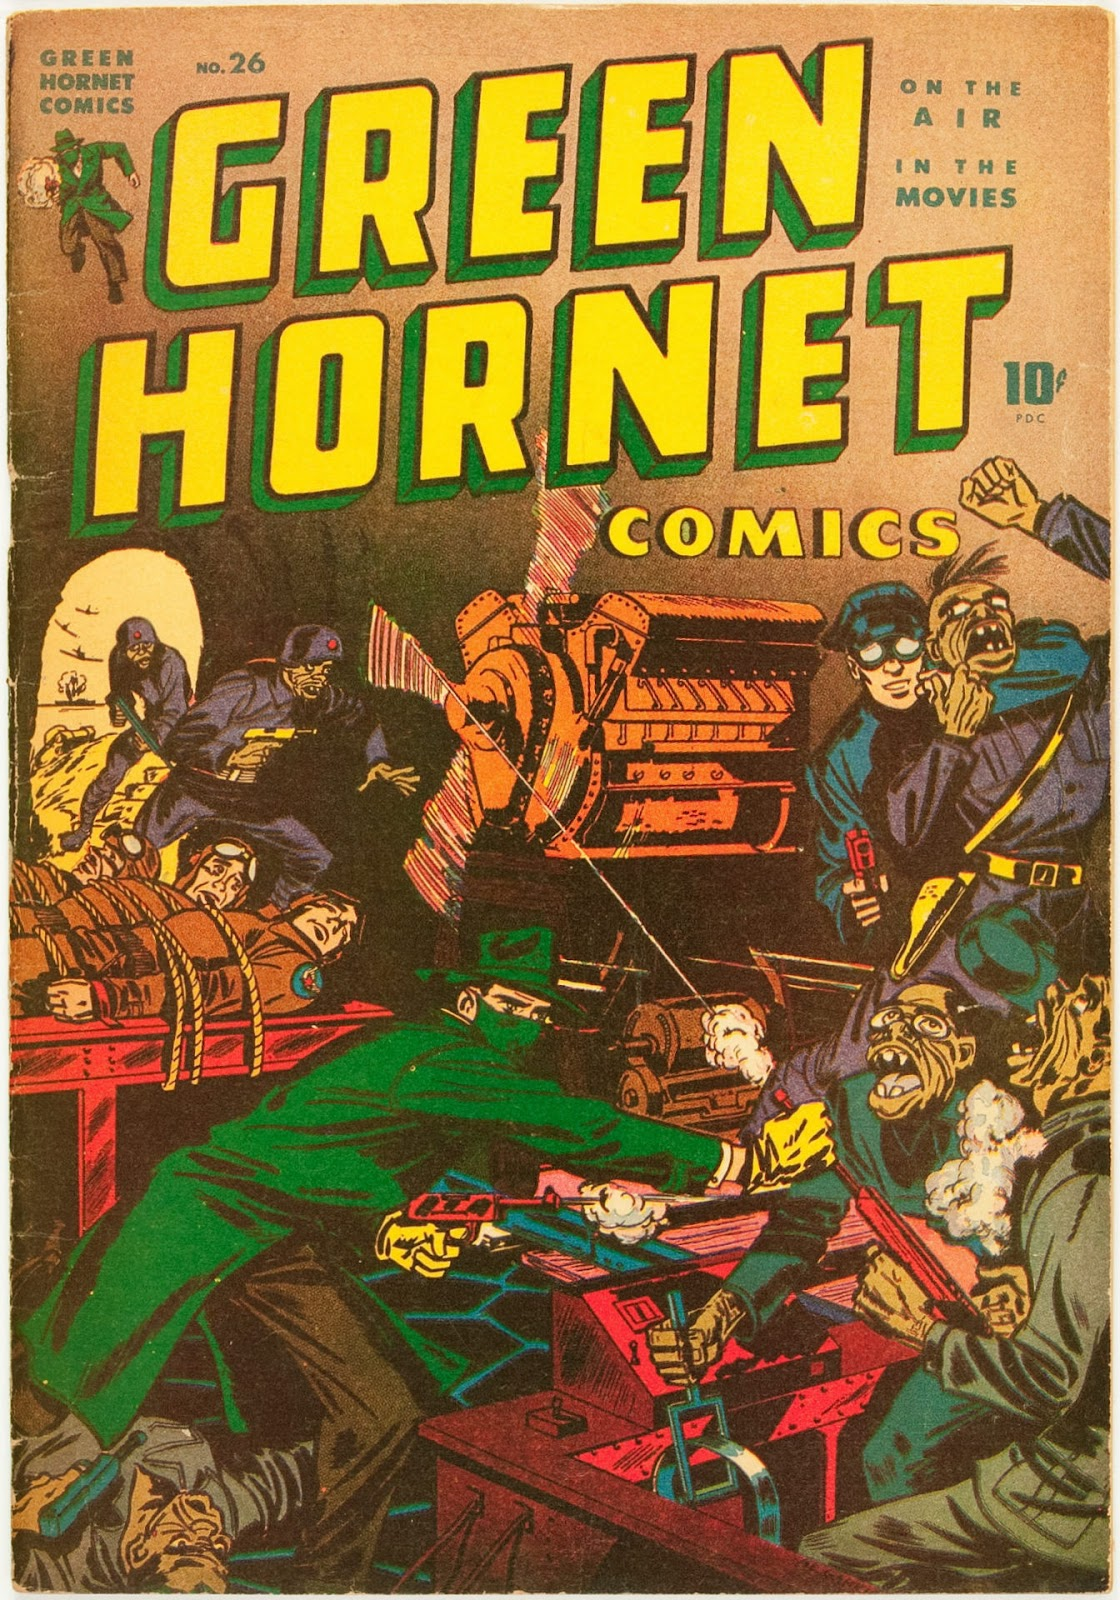 Green Hornet Comics issue 26 - Page 1